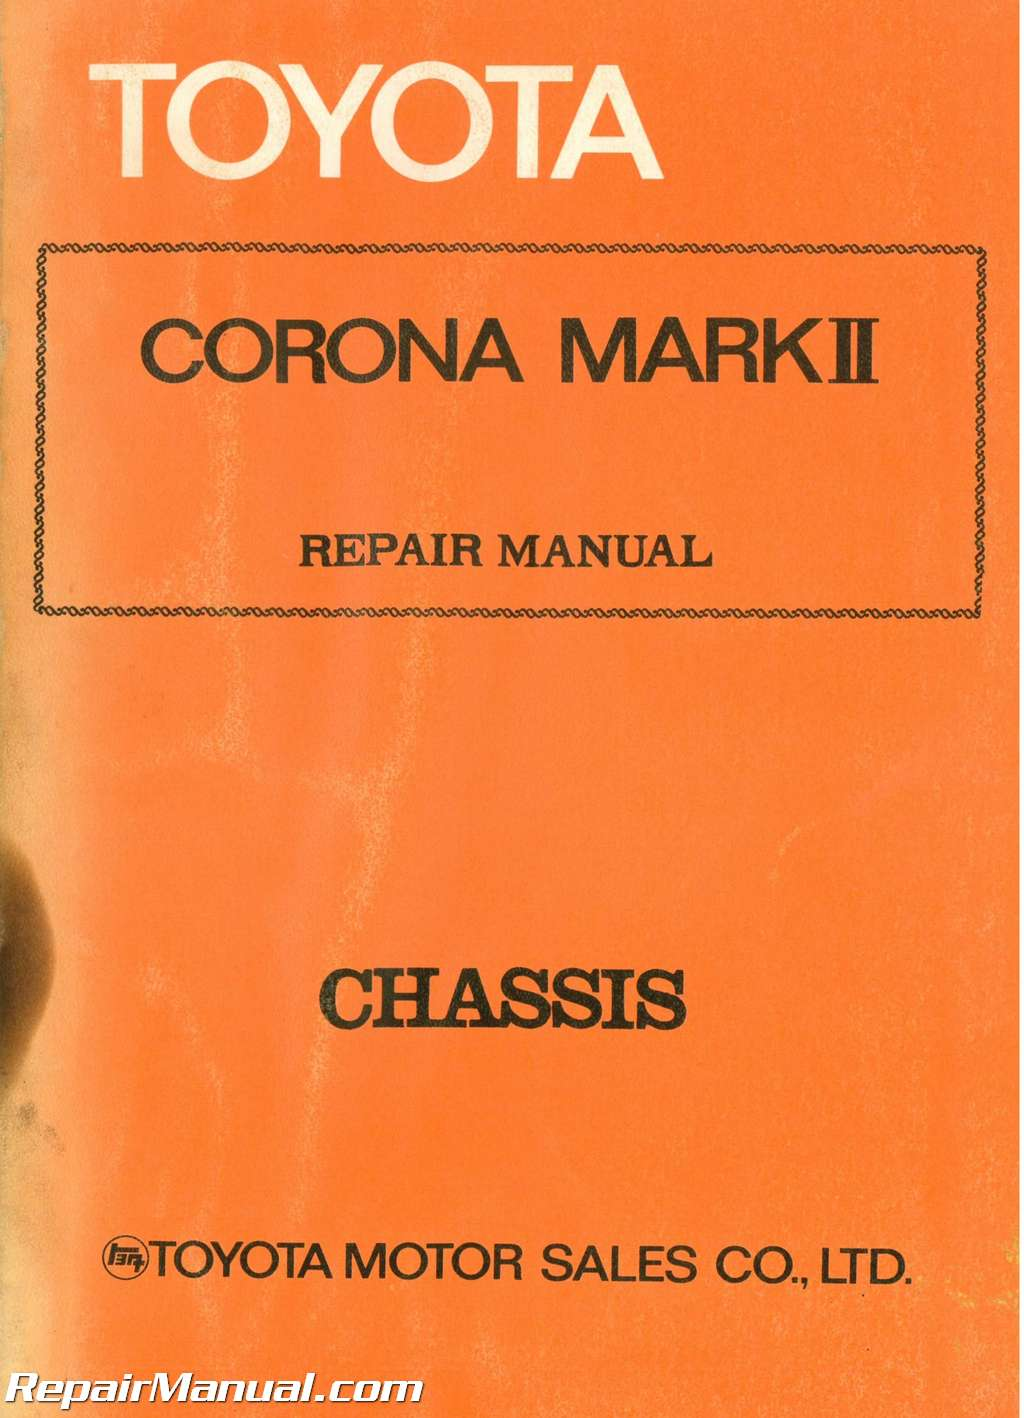 Used 1972 Toyota Corona Mark Ii Chassis Group Repair Manual